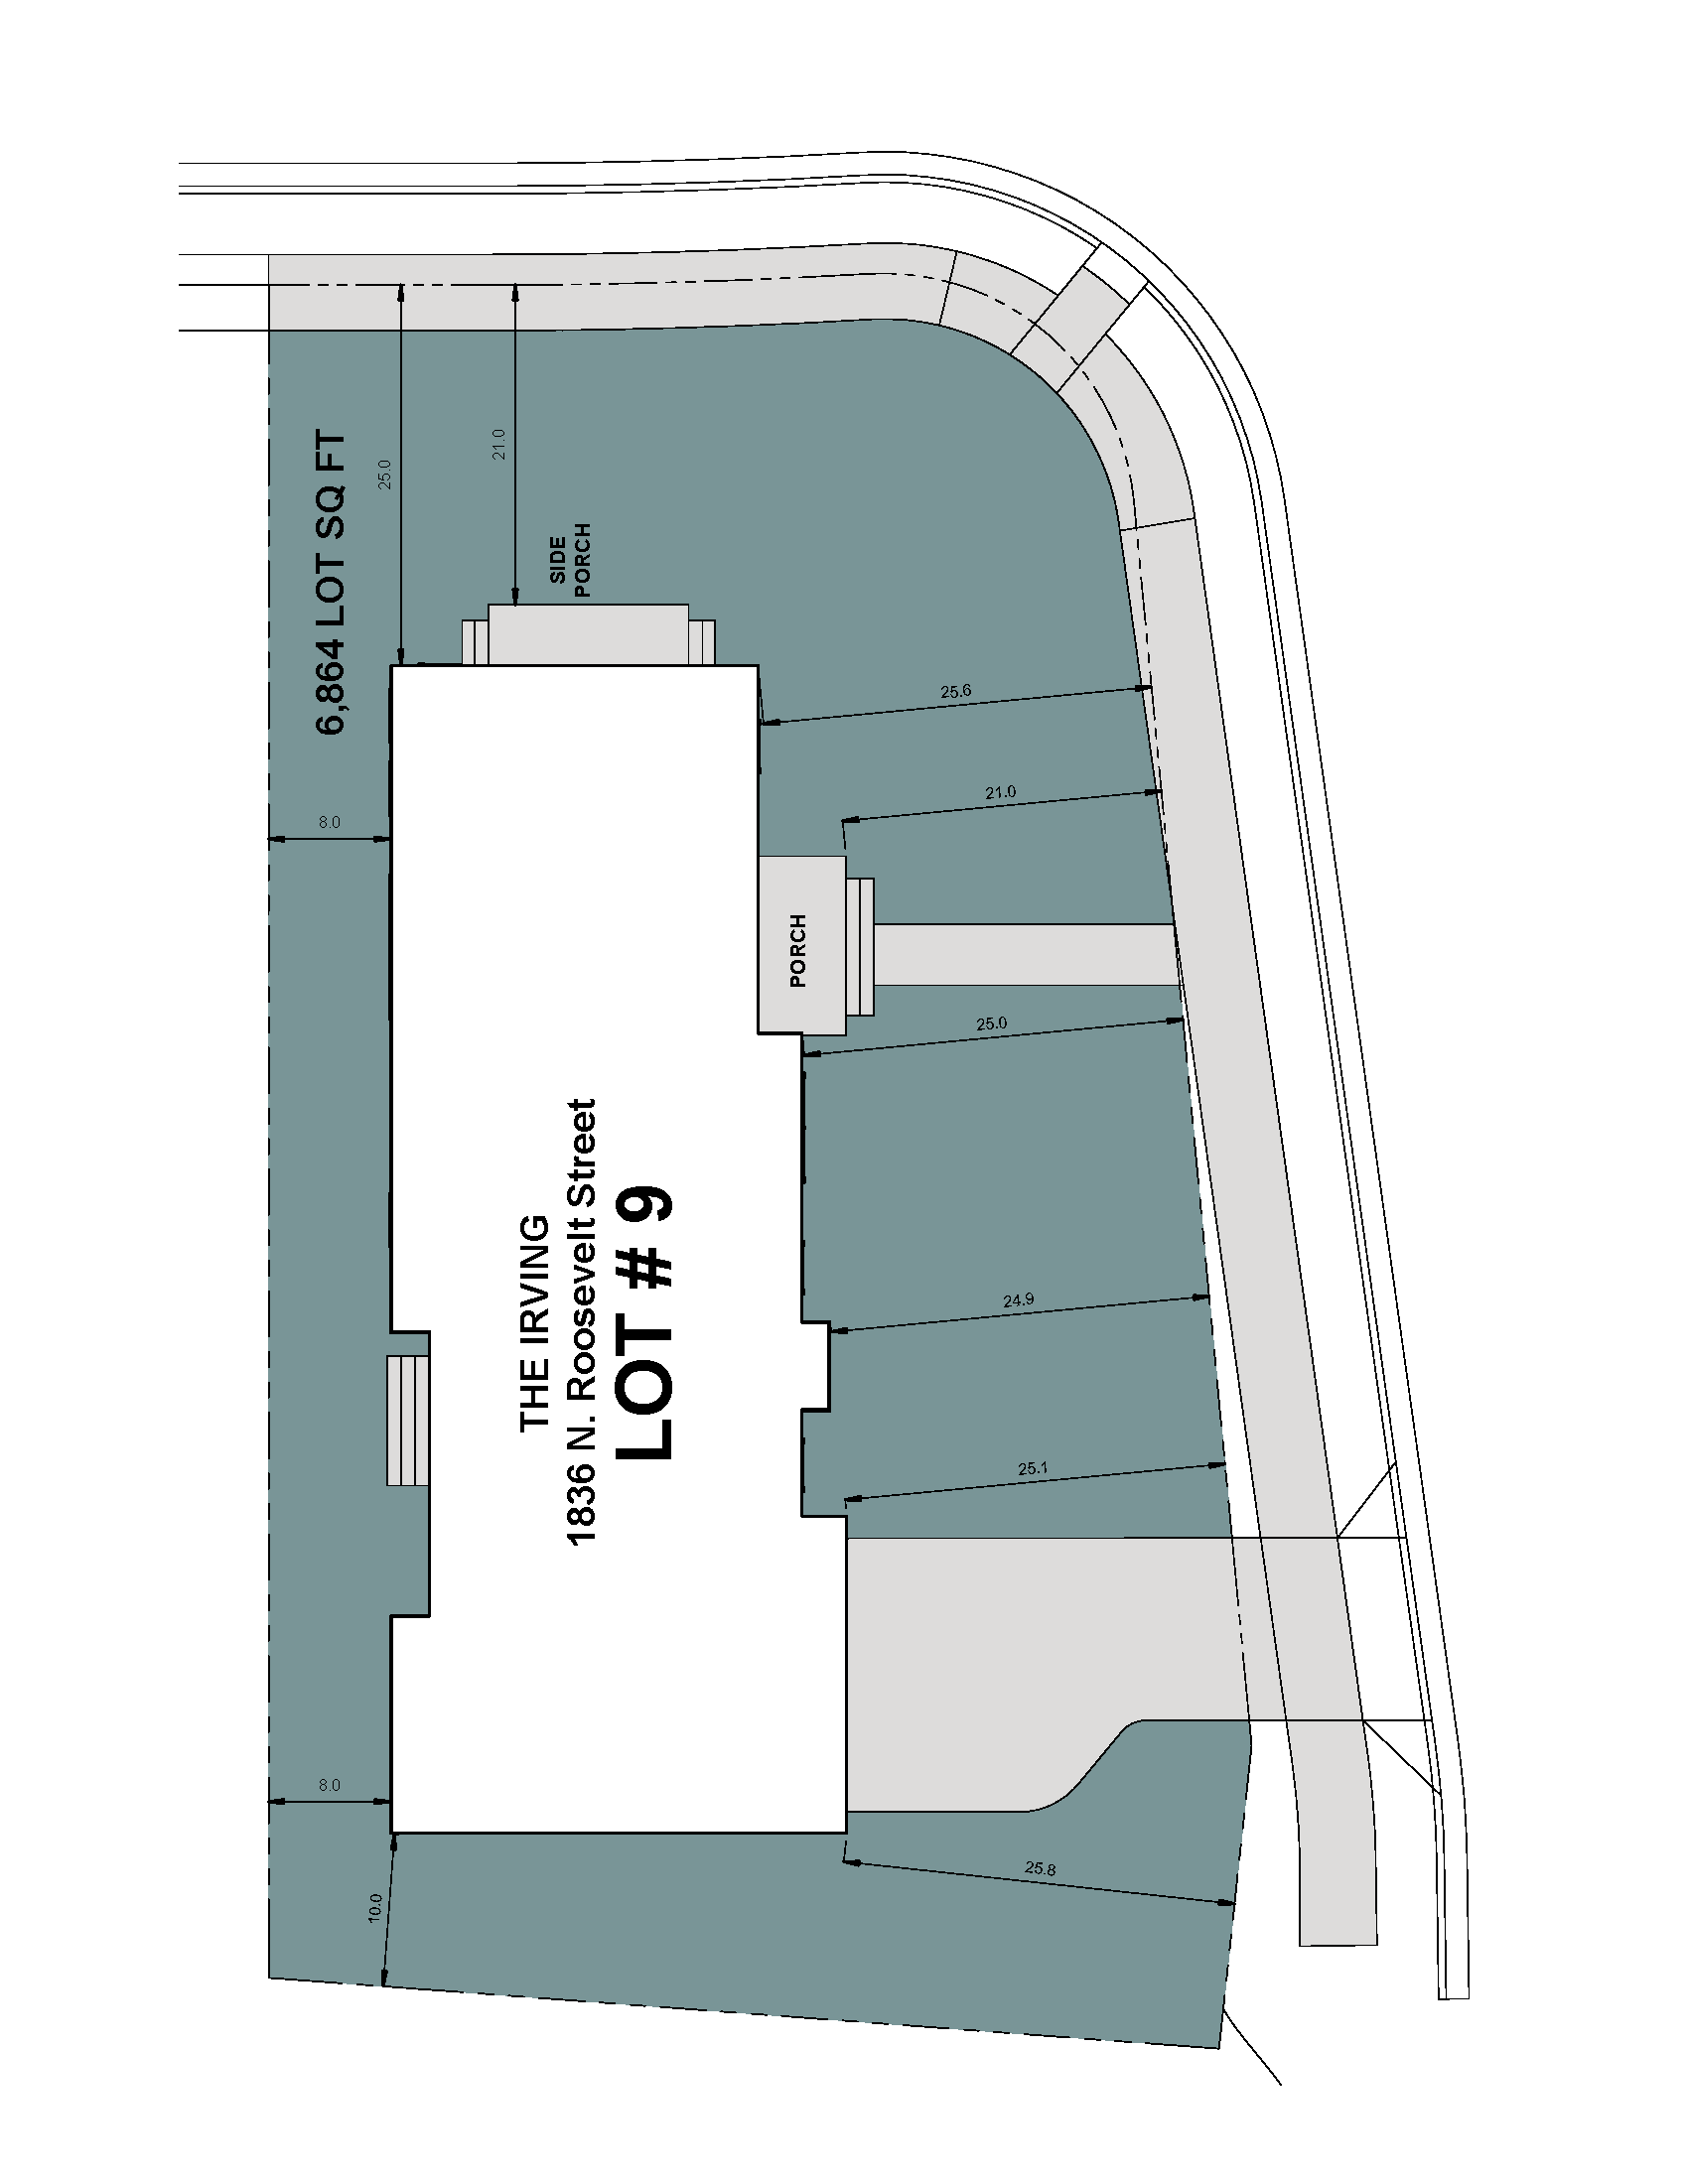 Lot 9 Site Plan-1836 N Roosevelt Street-Irving Model.png